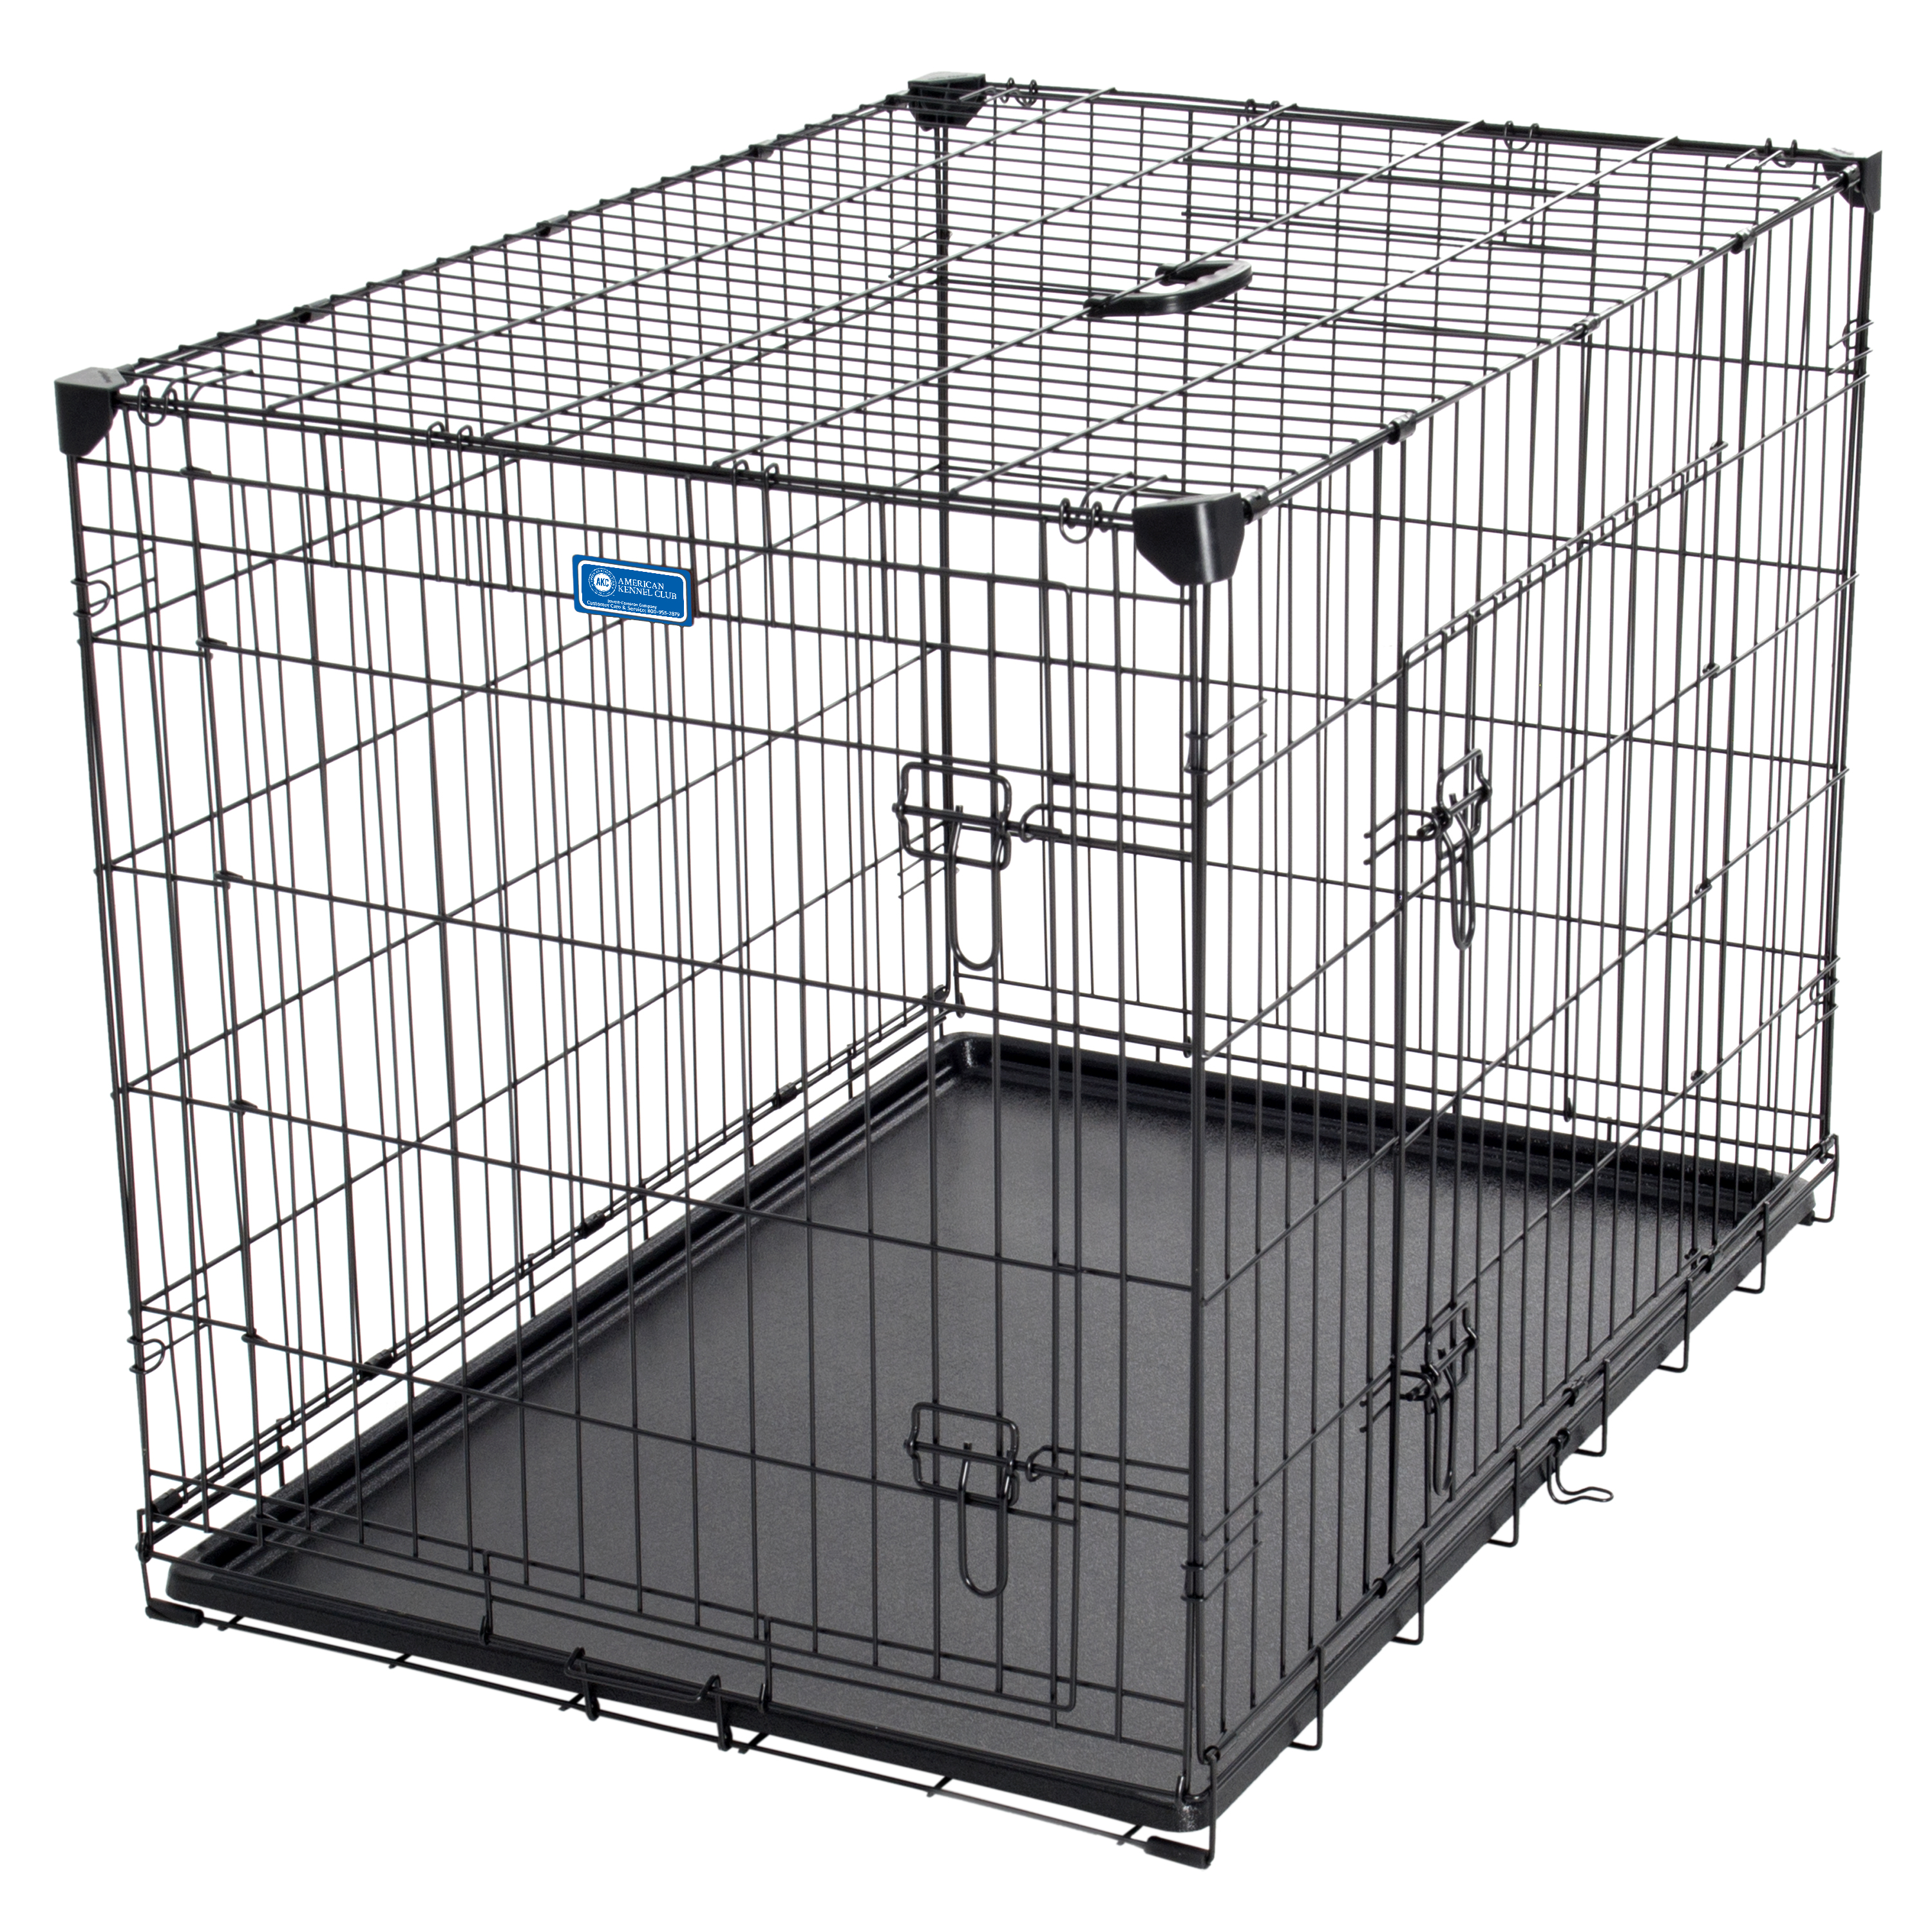 AKC® 36L x 24W x 27H Inch 2-Door Dog Training Crate with Corner Stabilizers, Rust-Resistant Wire, Handle, Leak-Proof Removable Pan, Free Training Guide